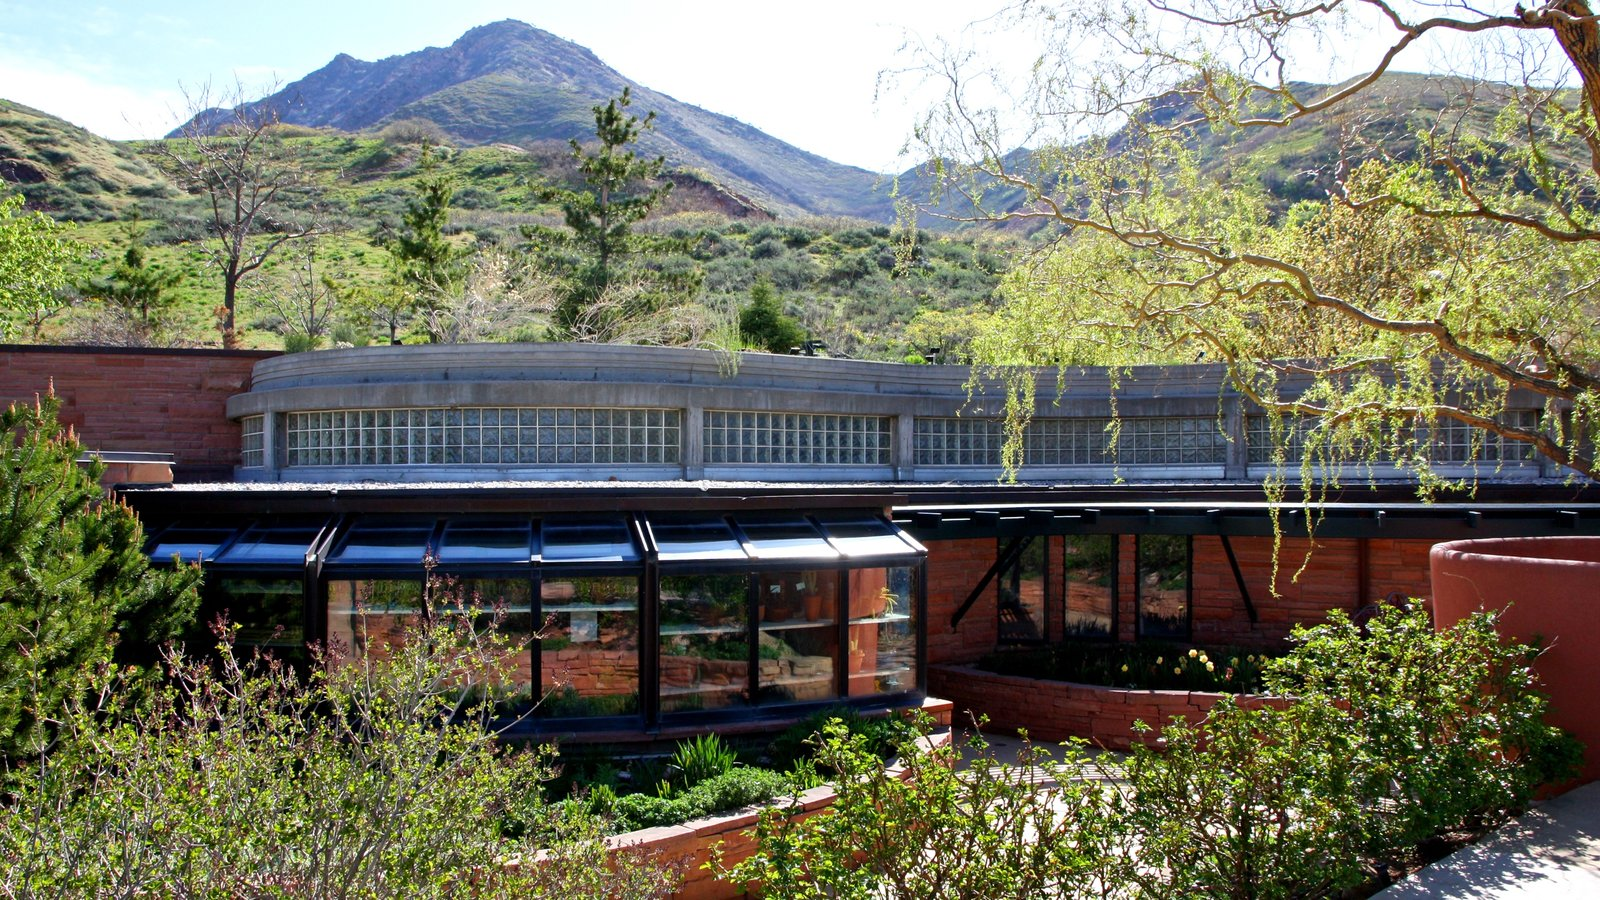 Red Butte Garden and Arboreteum featuring a garden and modern architecture